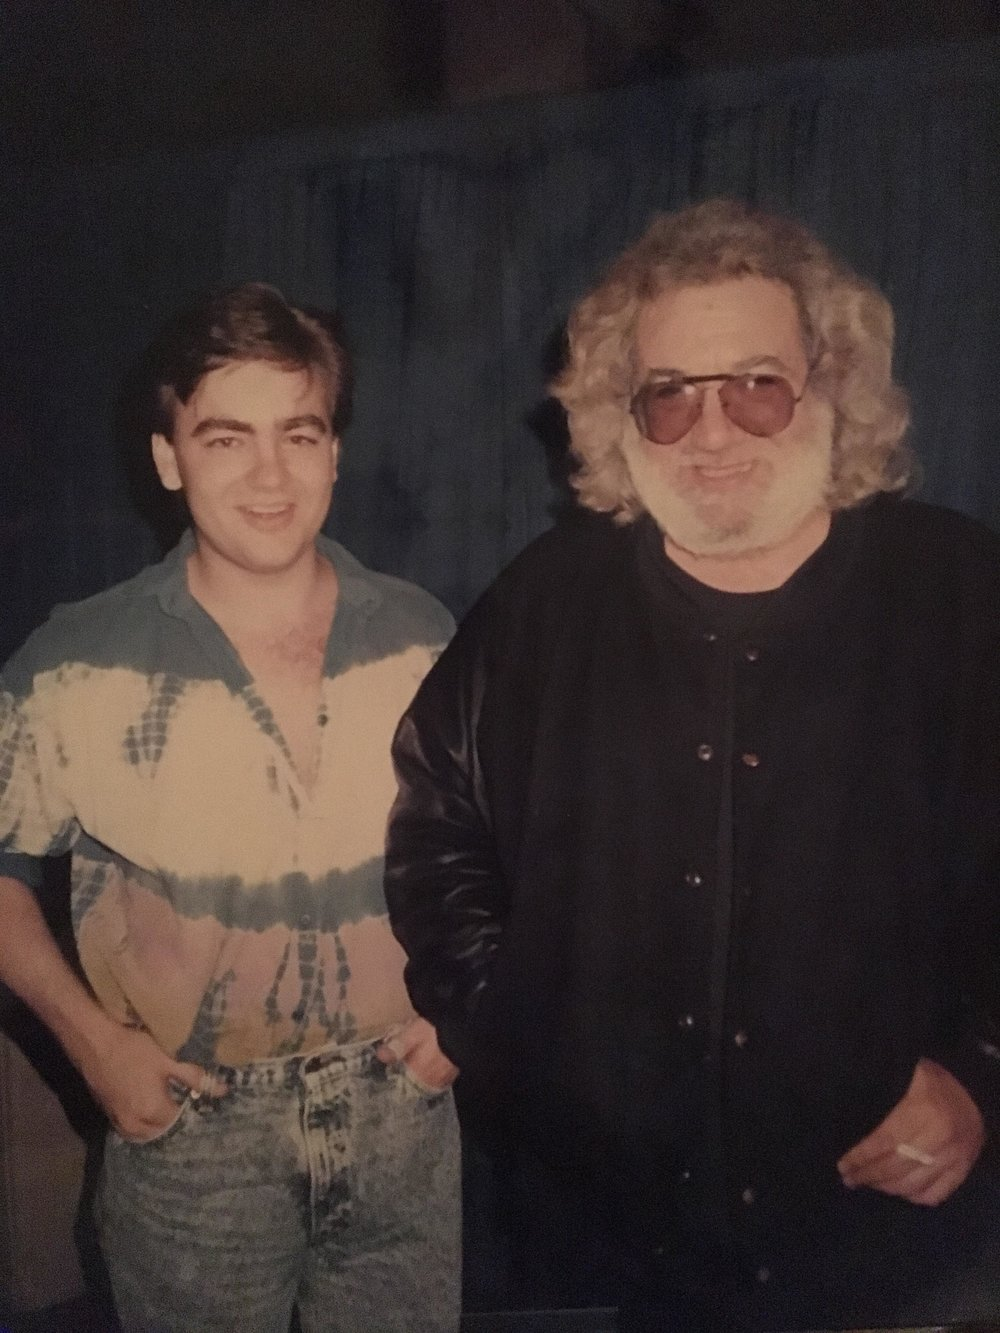 Ronnie McCoury & Jerry Garcia Photo by Allison McCoury Published w/ permission from Allison McCoury